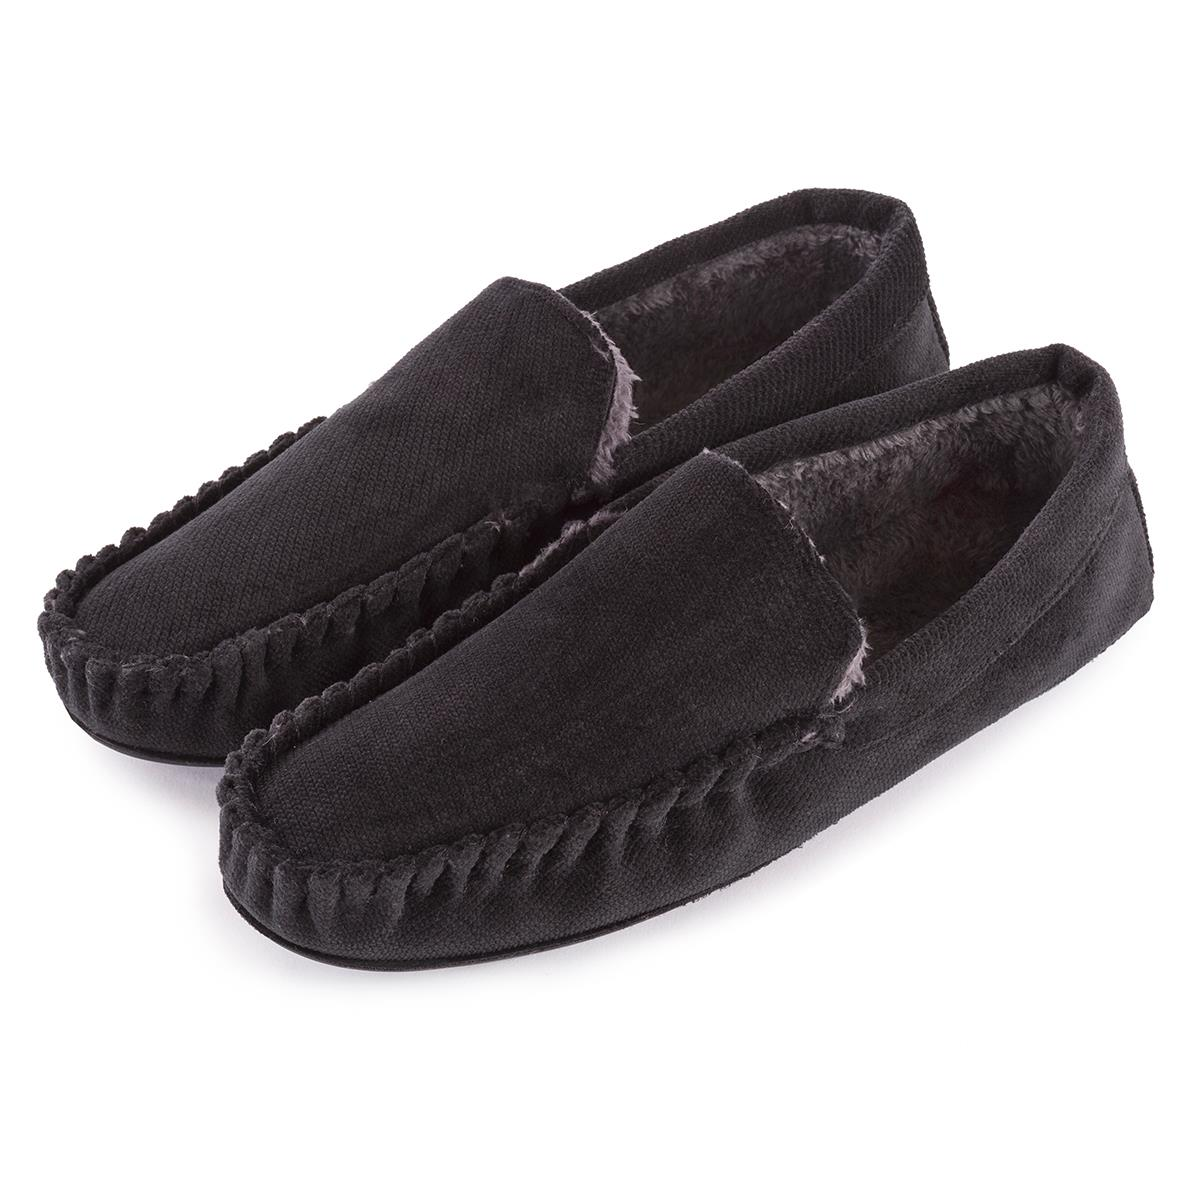 Totes Mens Cord Moccasin Slippers Totes Isotoner